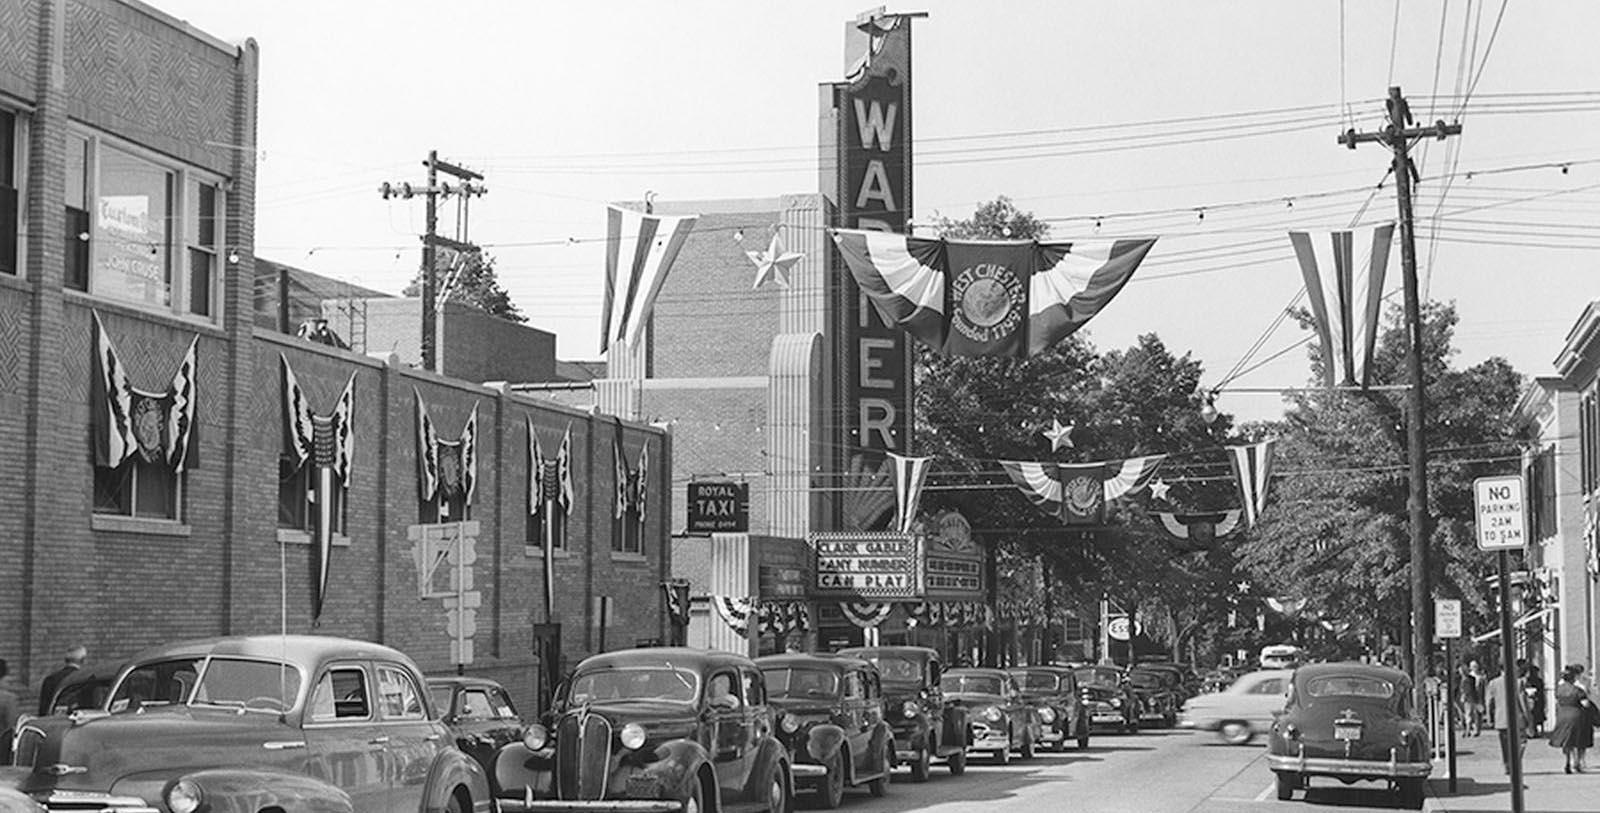 Image of Historic Exterior, Hotel Warner in West Chester, Pennsylvania, 1930, Member of Historic Hotels of America, Discover